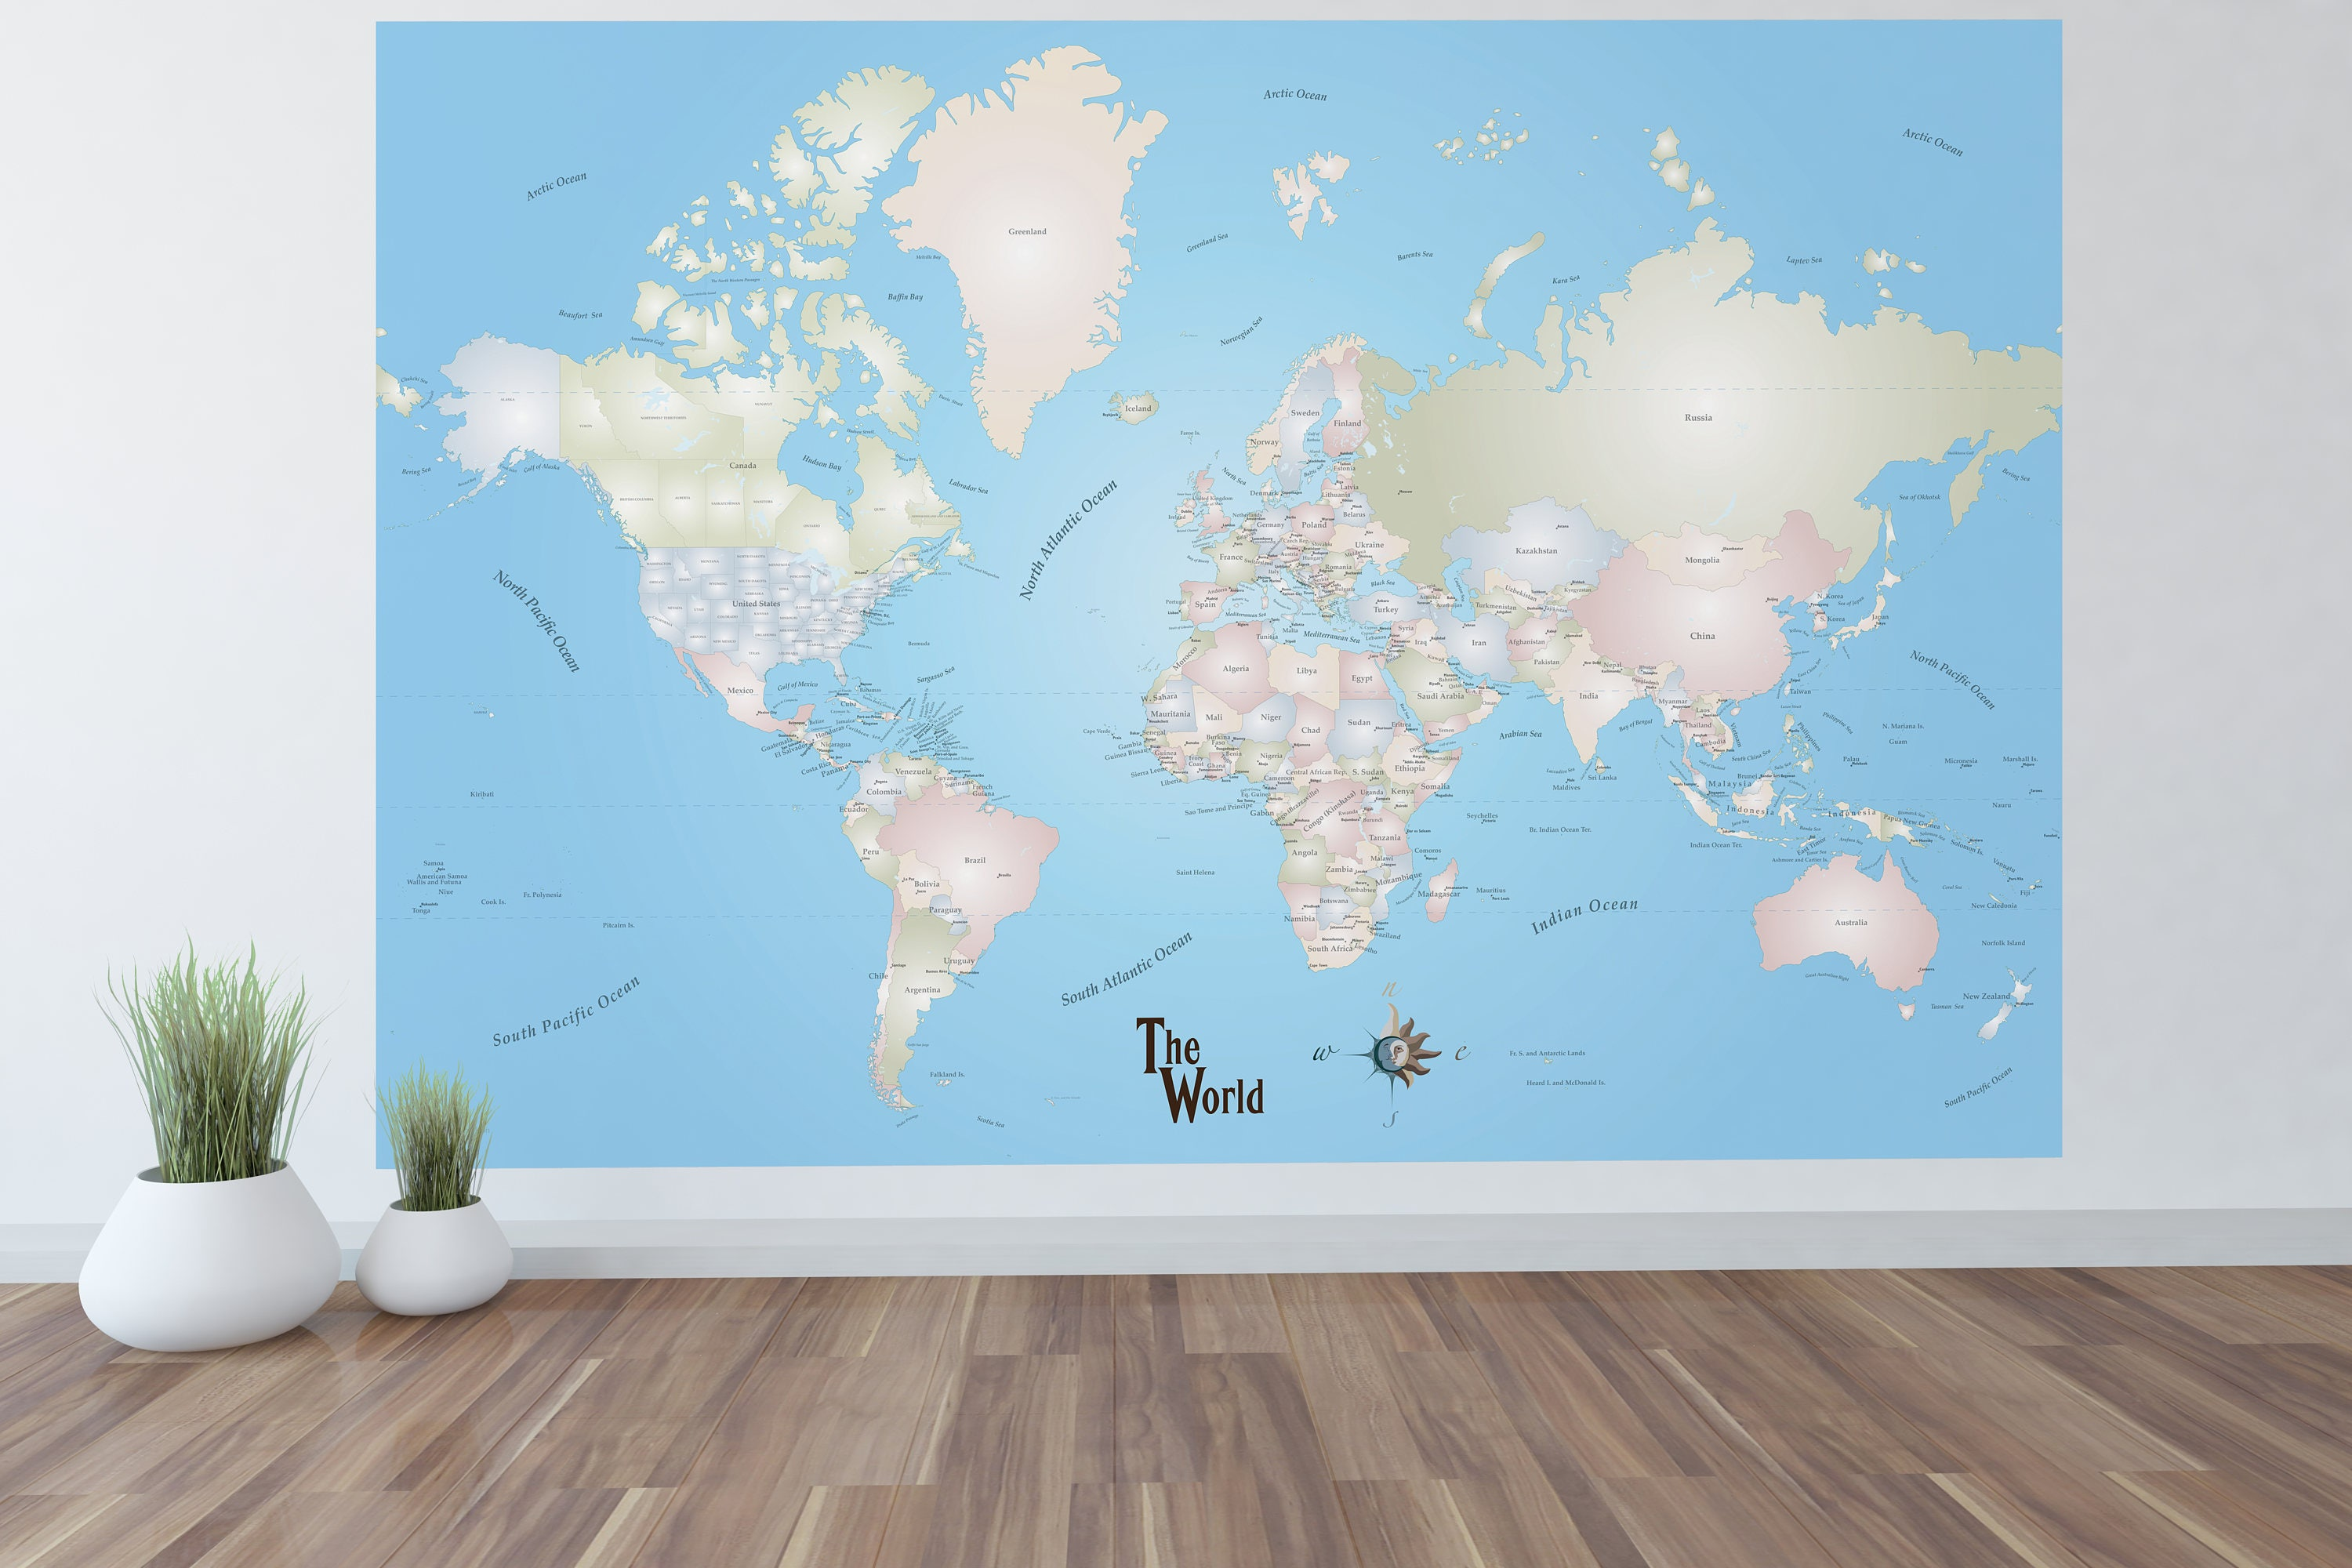 Giant world map mural stylish and educational world map wall art giant world map mural stylish and educational world map wall art world map decal 72x48 with capitols gumiabroncs Choice Image